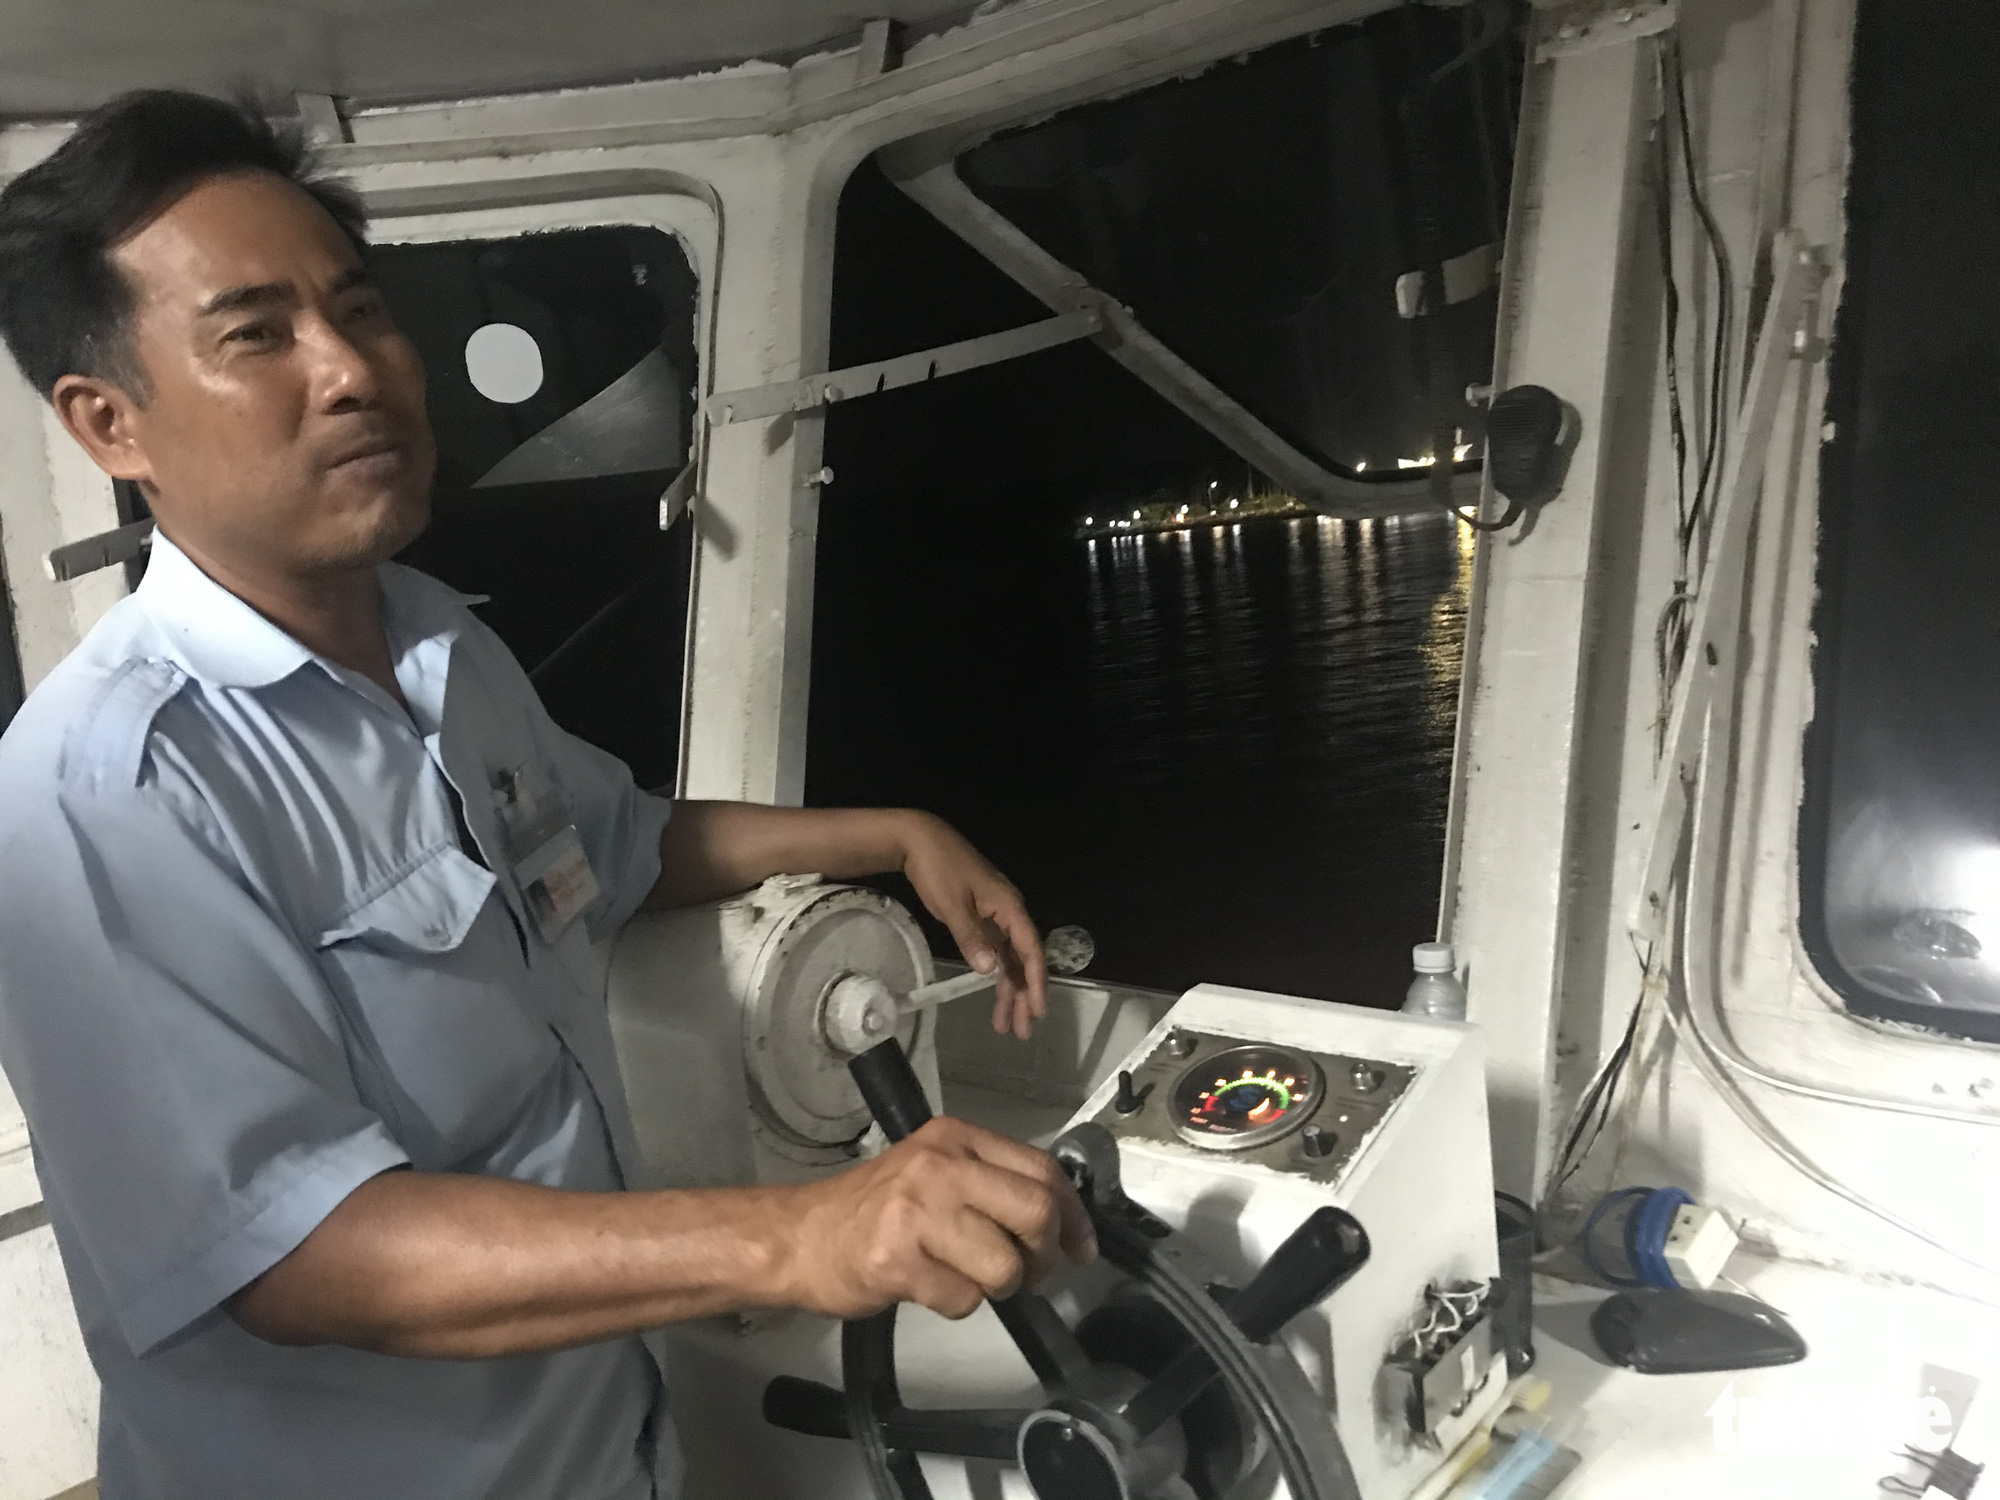 Nguyen Van Tinh, a seasoned captain, is pictured during his last ride on the Cao Lanh Ferry, which was in operation for nearly 100 years in Cao Lanh City, the heart of Dong Thap Province, southern Vietnam. Photo: Thanh Nhon / Tuoi Tre